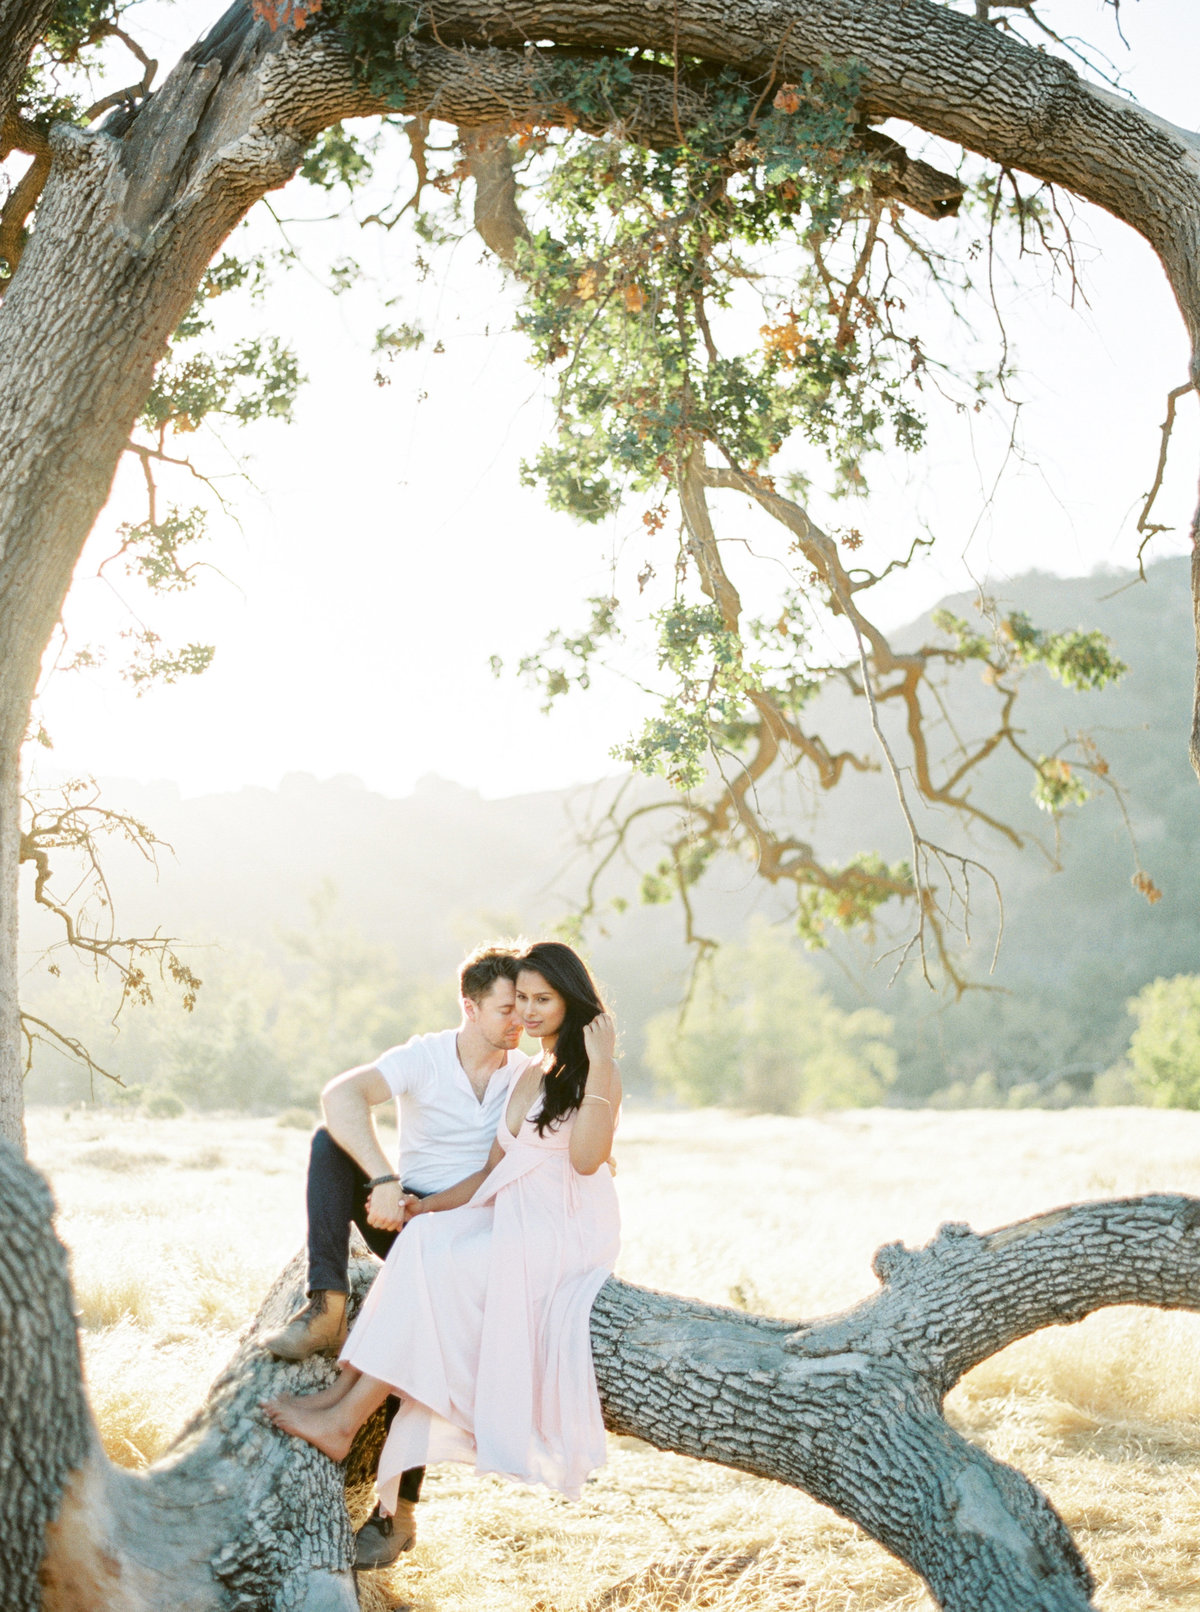 CORNELIA ZAISS PHOTOGRAPHY | RIMA + ALEX PORTRAIT SESSION 078